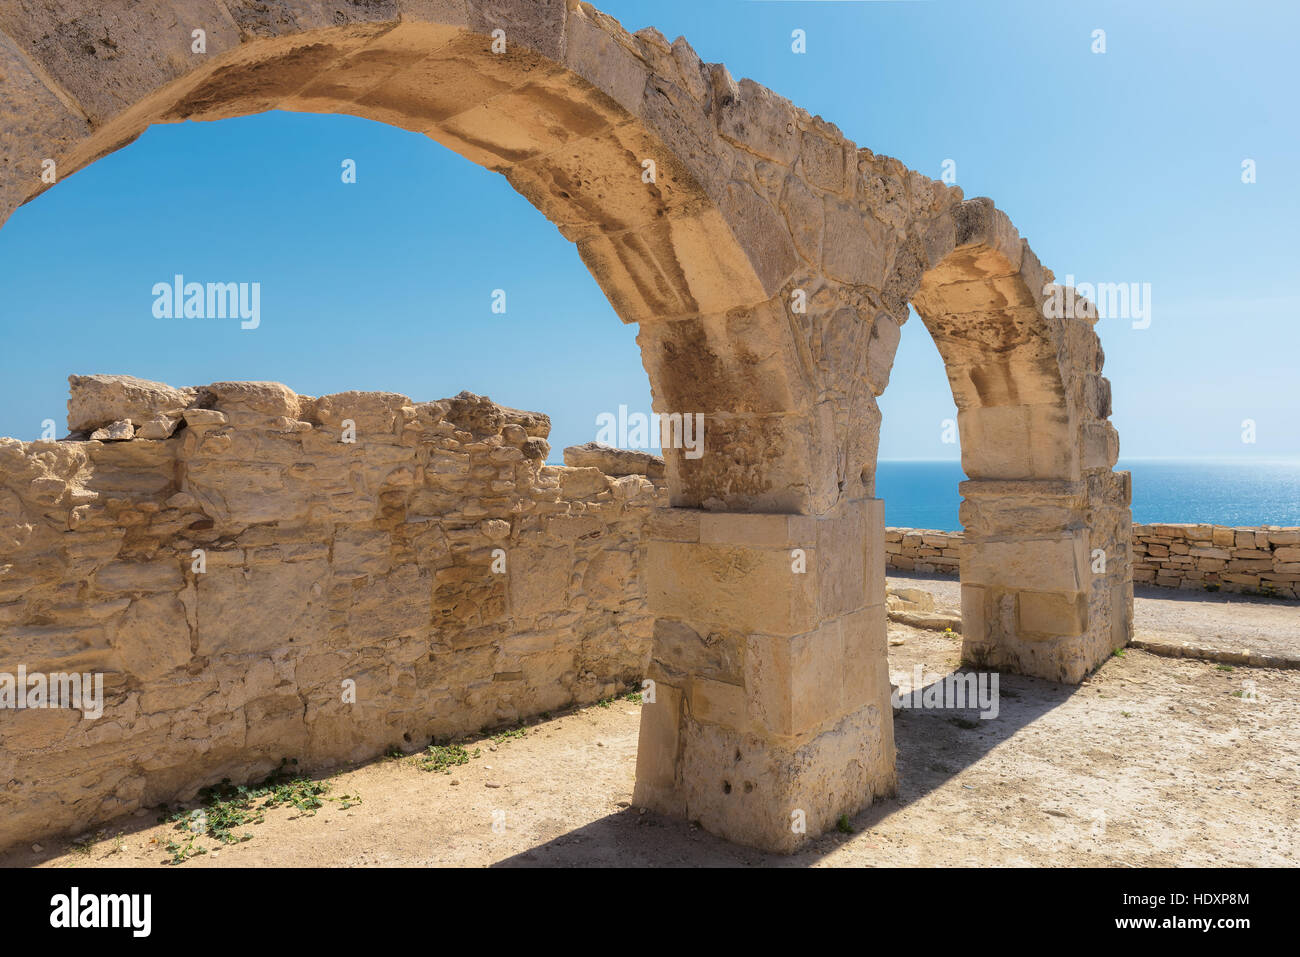 Ancient arches ruin city of Kourion near Limassol, Cyprus - Stock Image